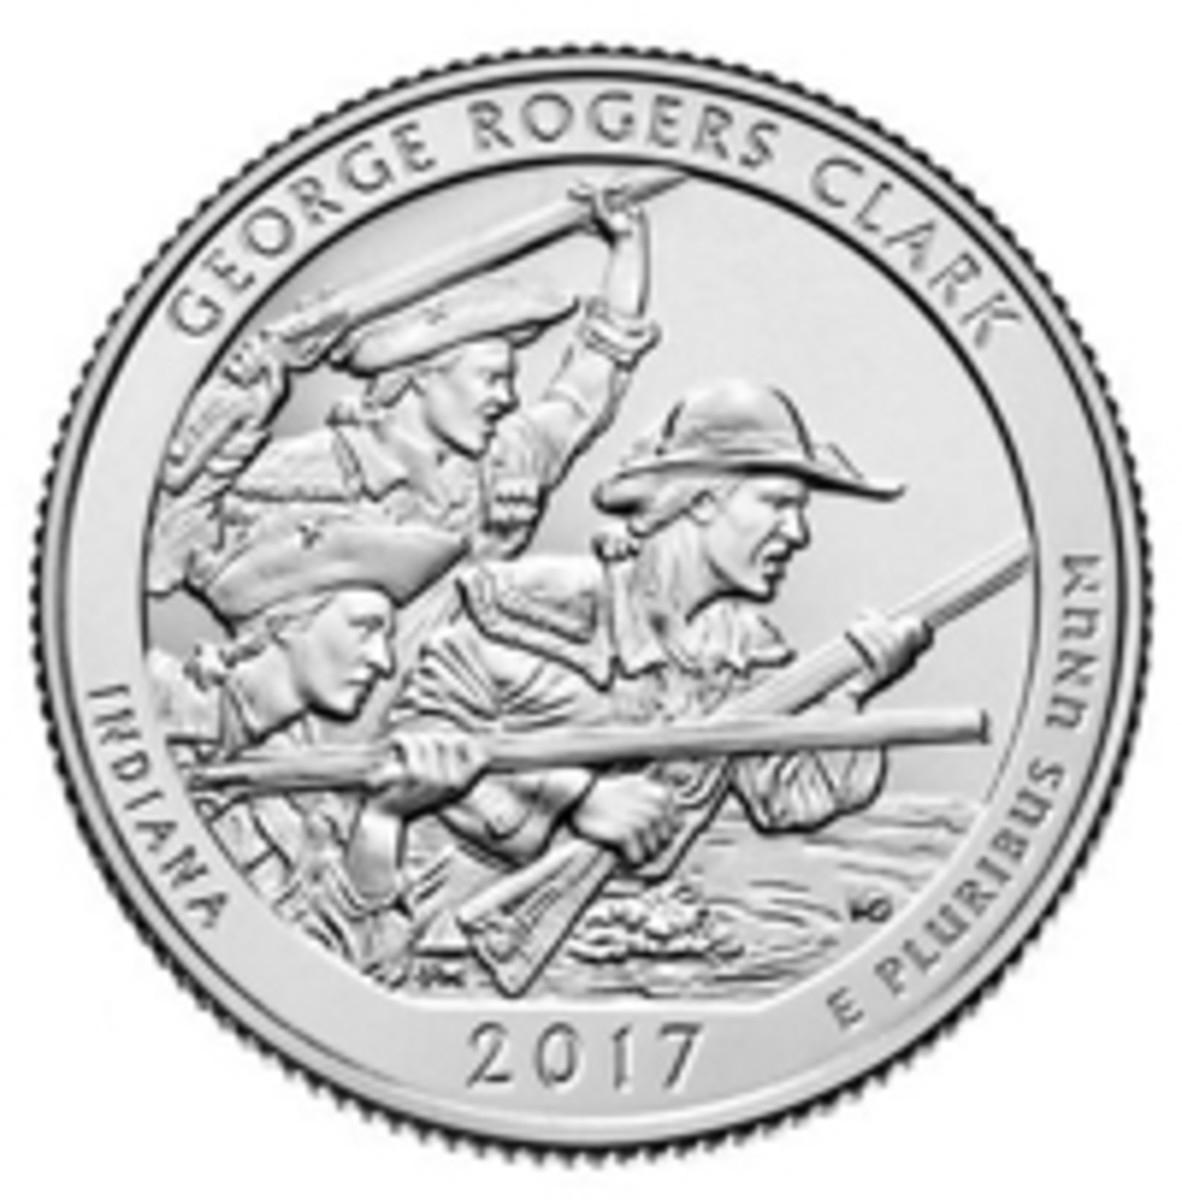 The George Rogers Clark National Historical Park coin, part of the American the Beautiful series.